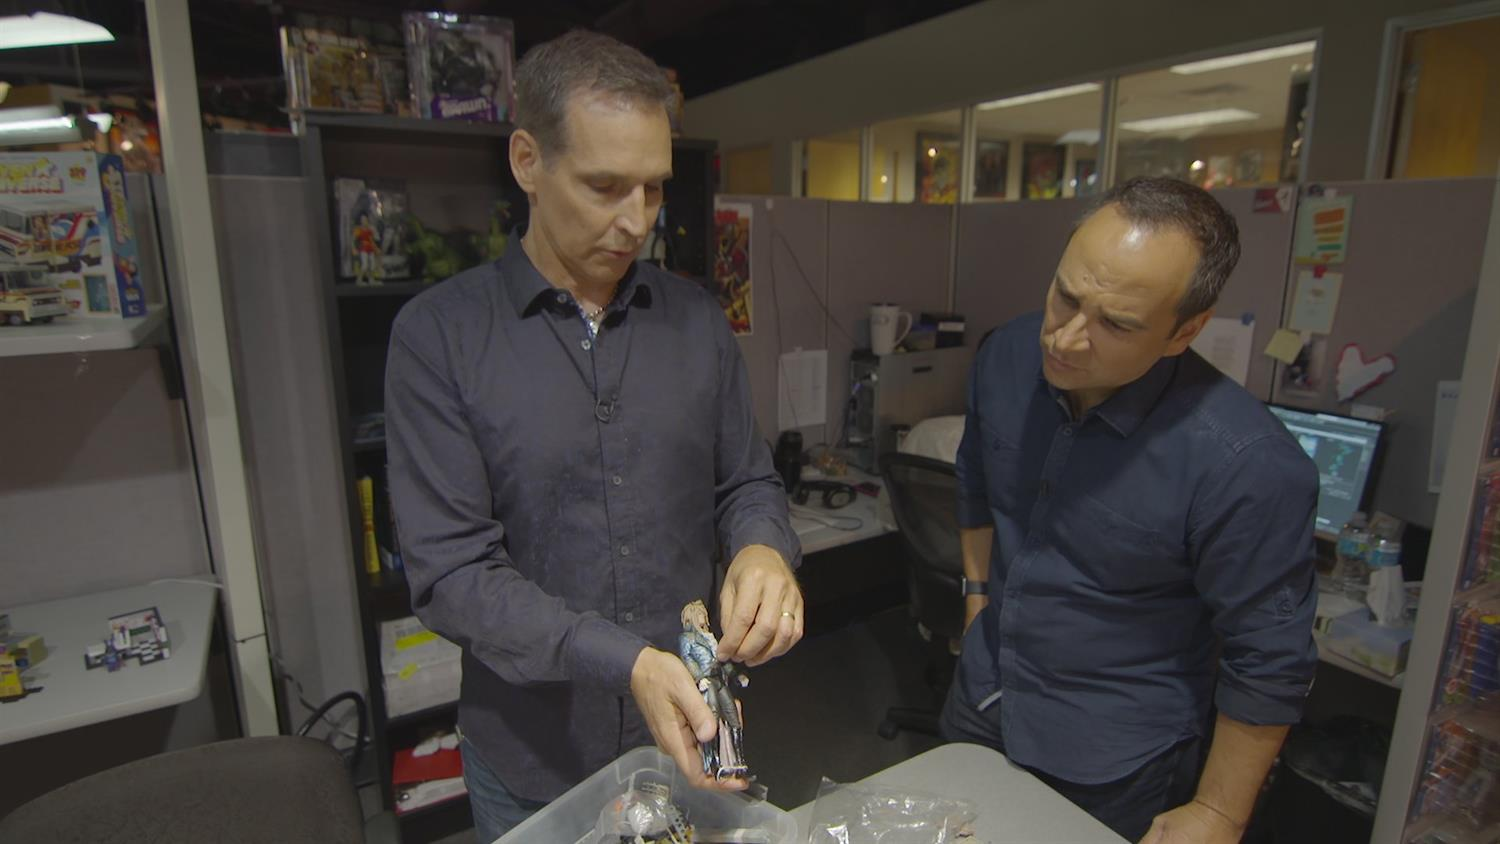 McFarlane Toys Office Tour: Todd McFarlane, Labyrinth and the Making of a Figure